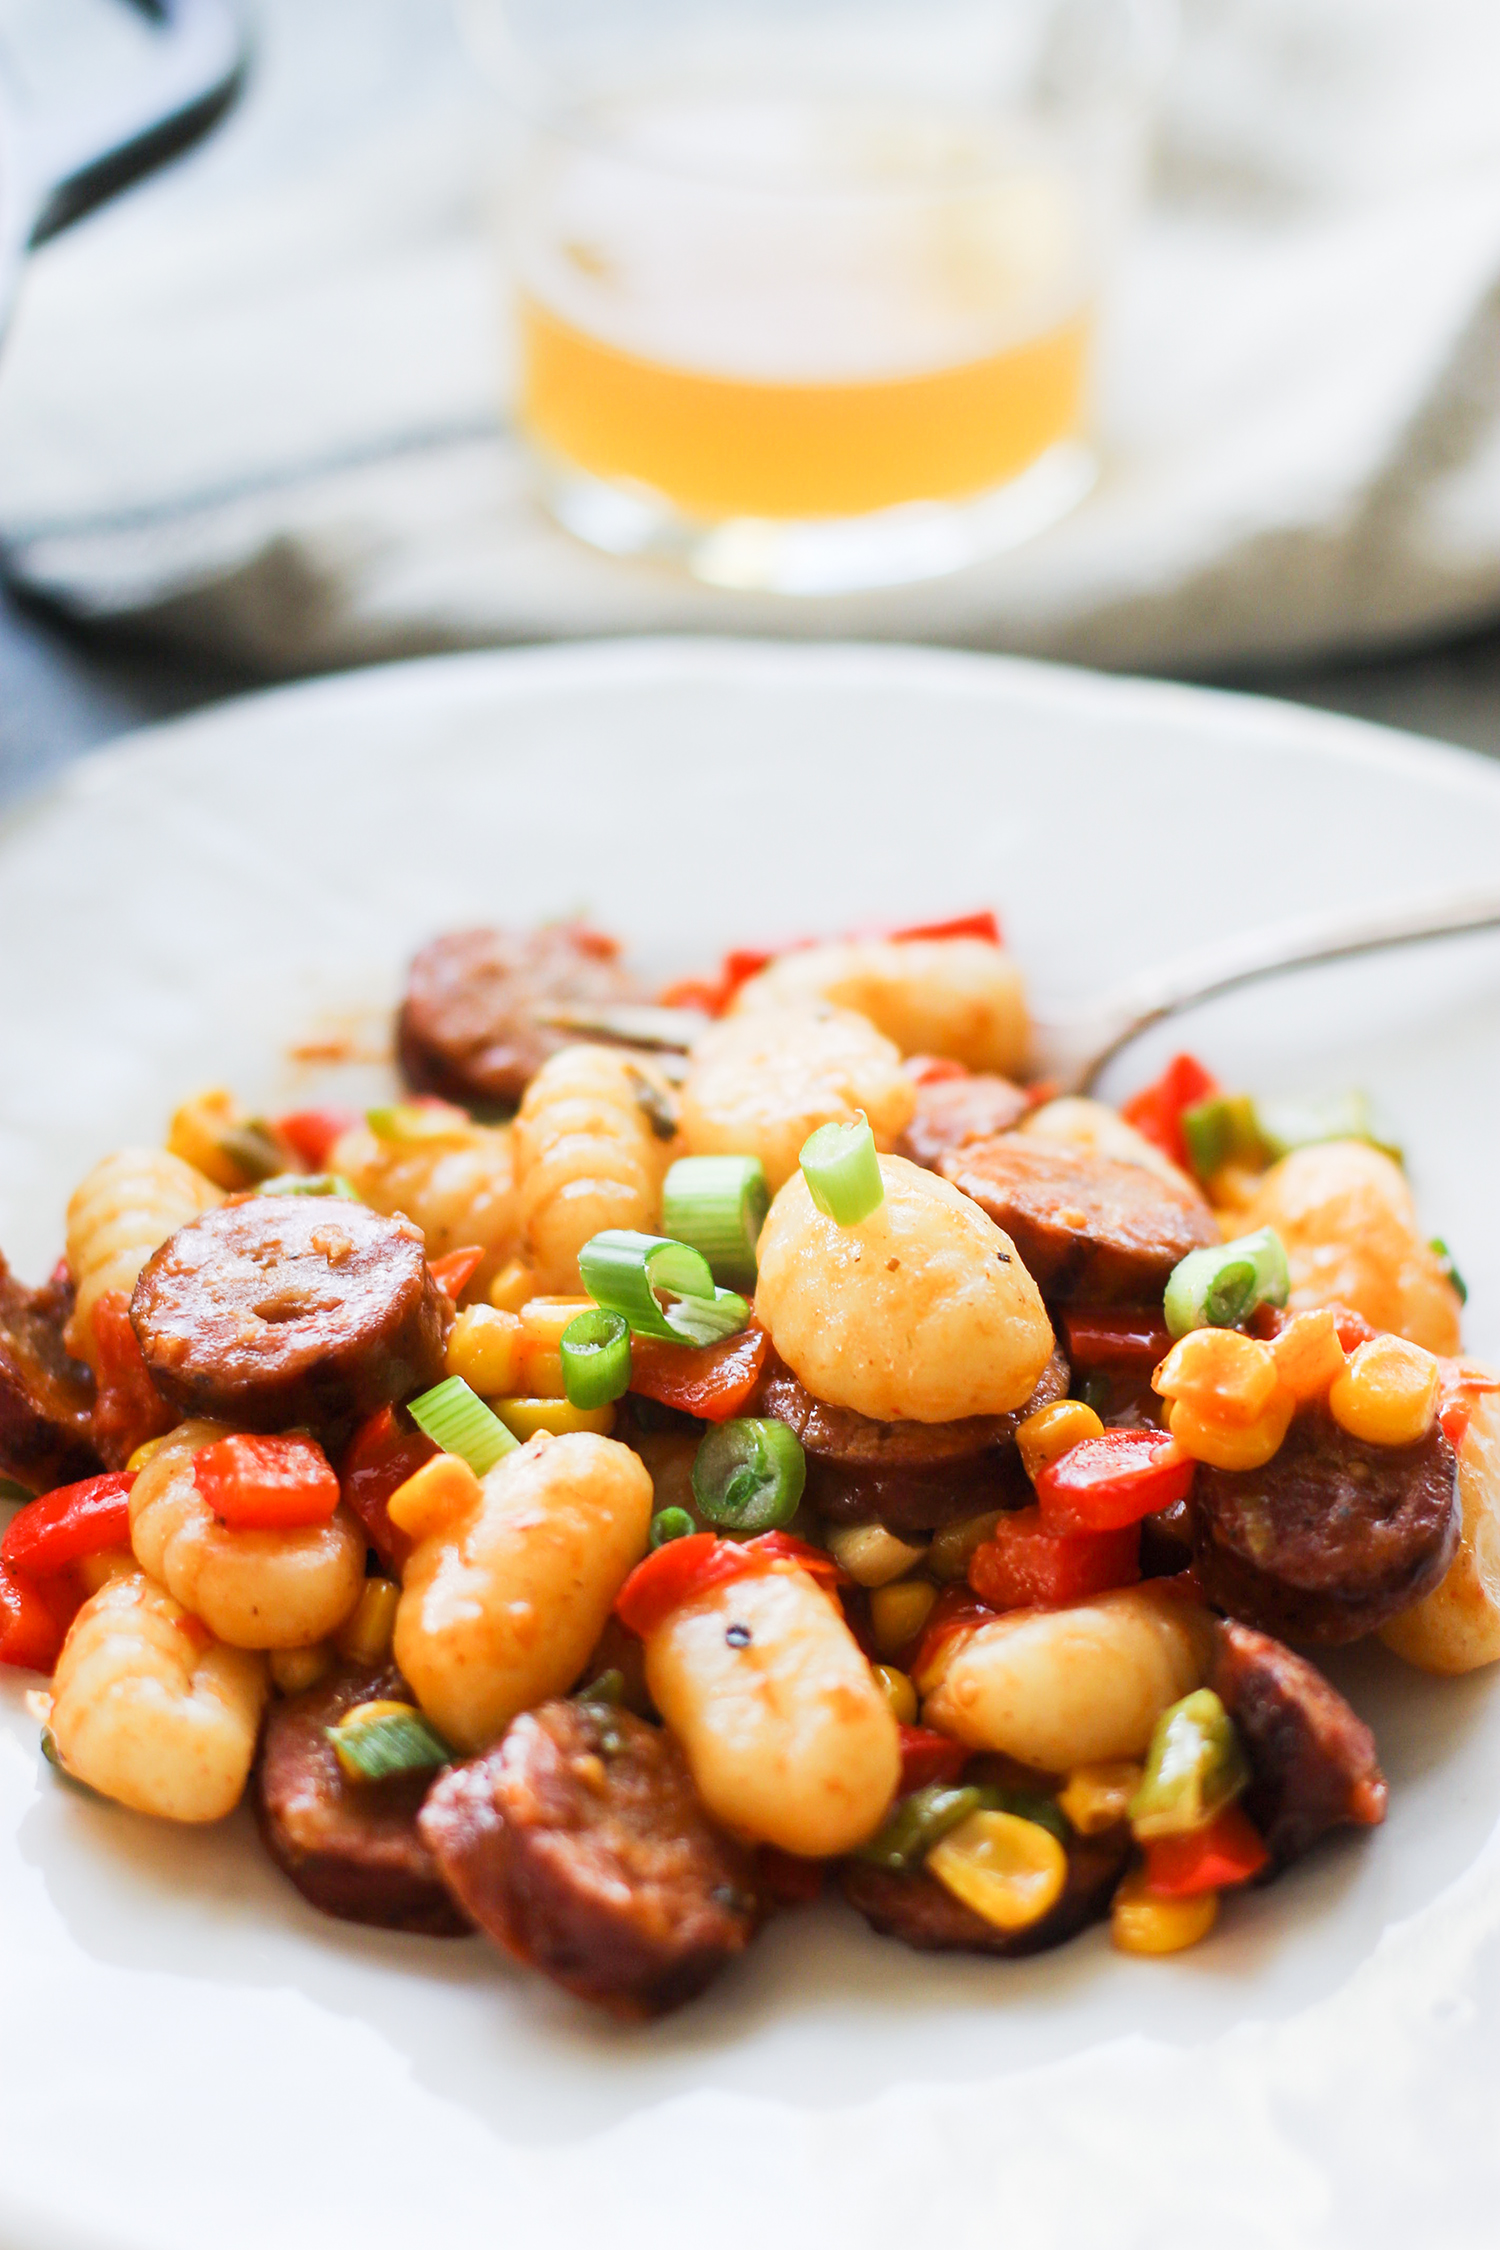 20-MInute Gnocchi Skillet with Smoked Sausage and Veggies: My Diary of Us